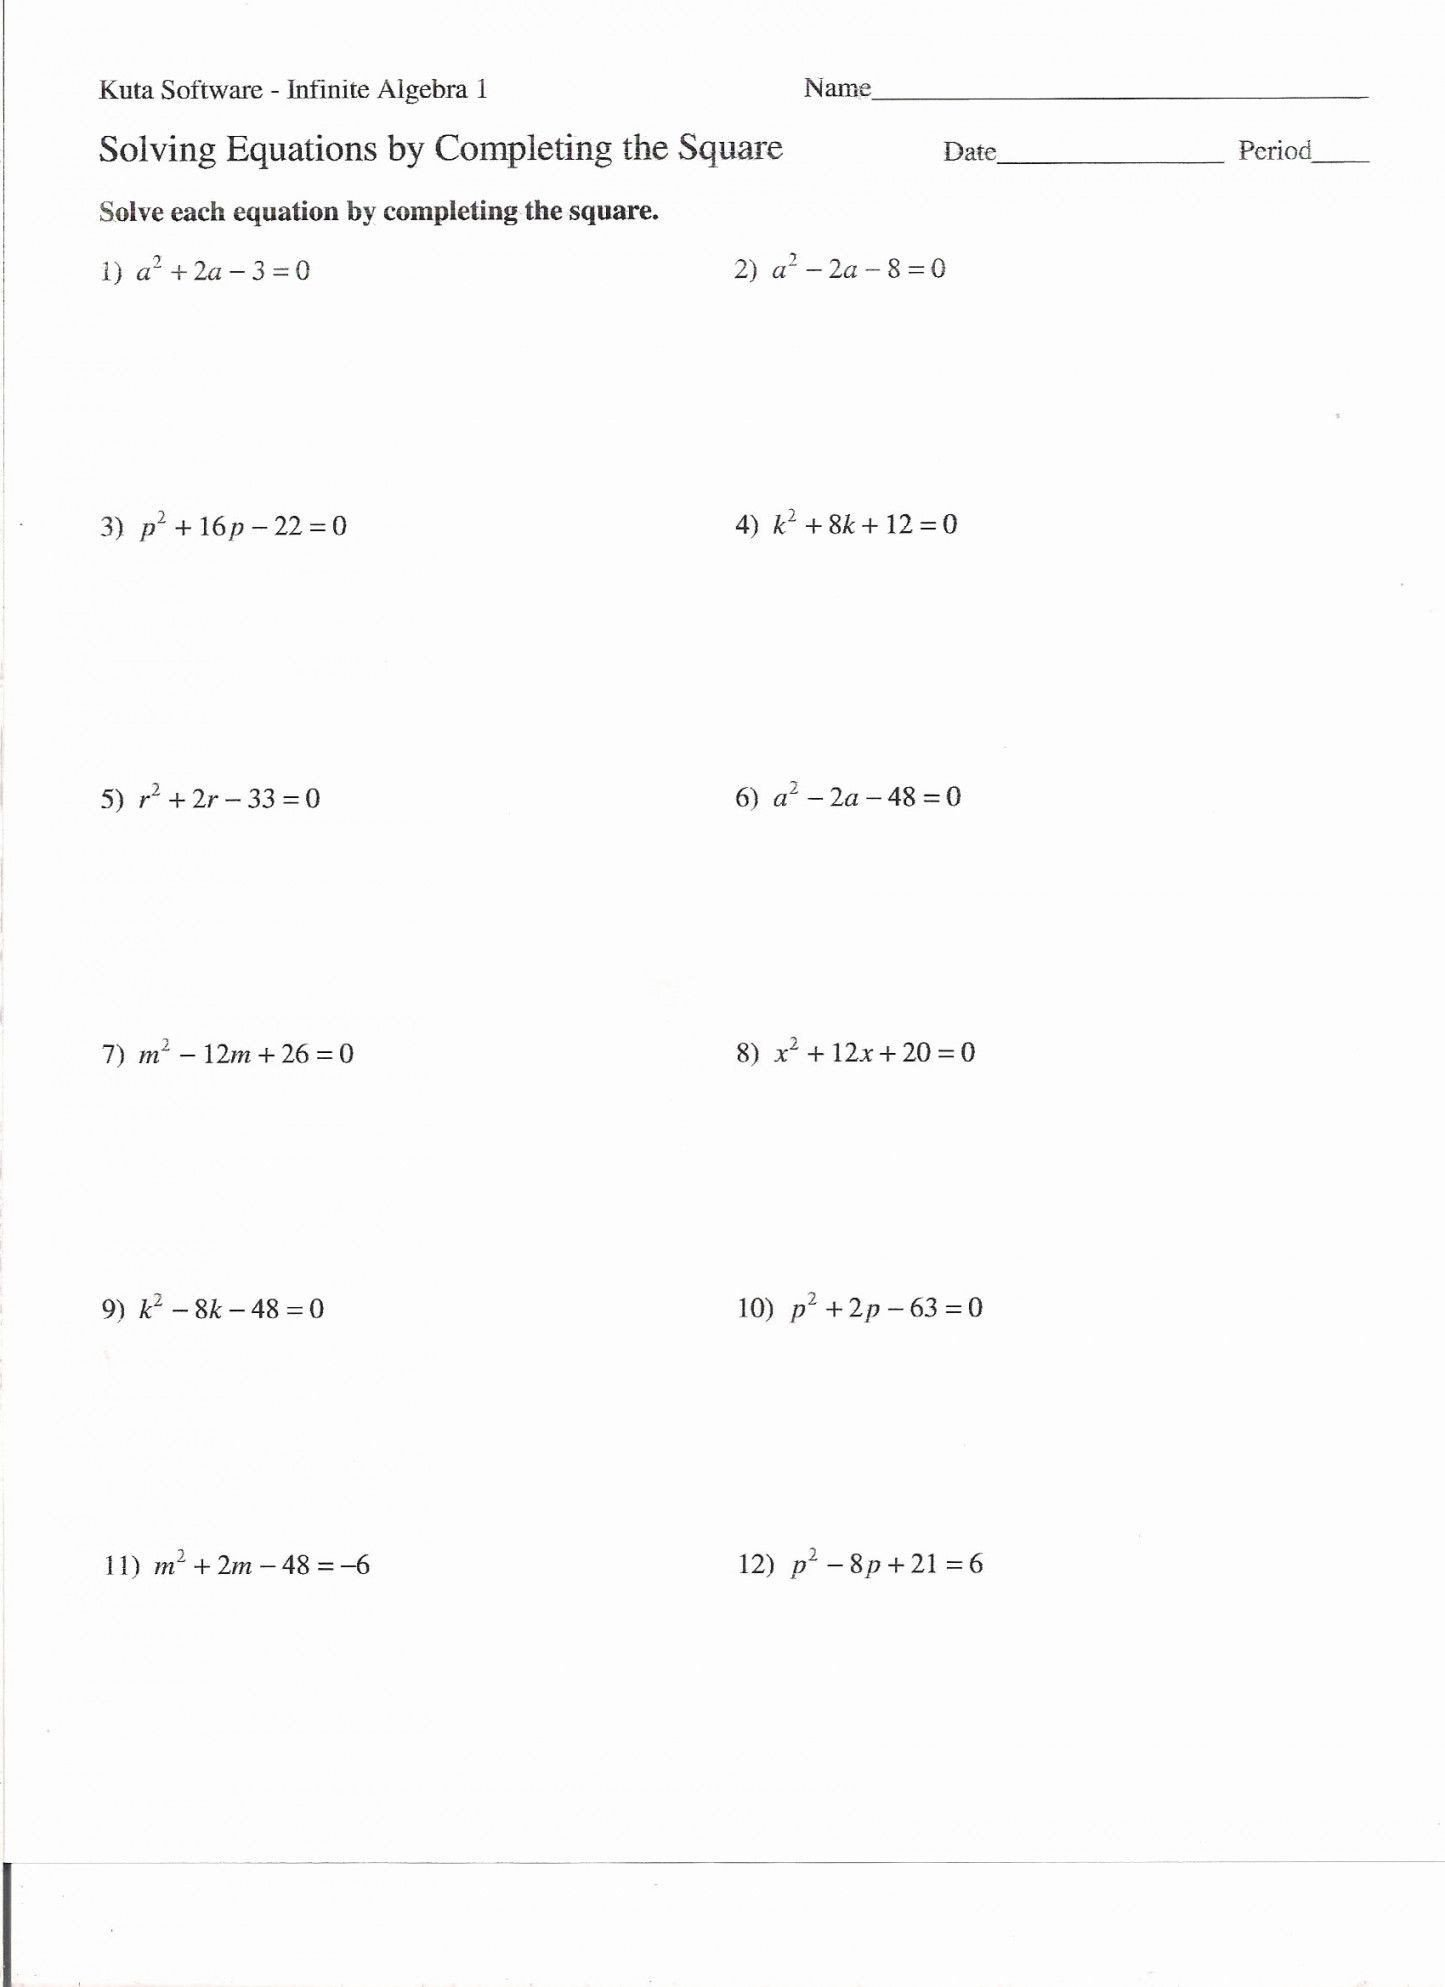 Distributive Property Worksheet 6th Grade Distributive Property Worksheet 6th Grade Distributive